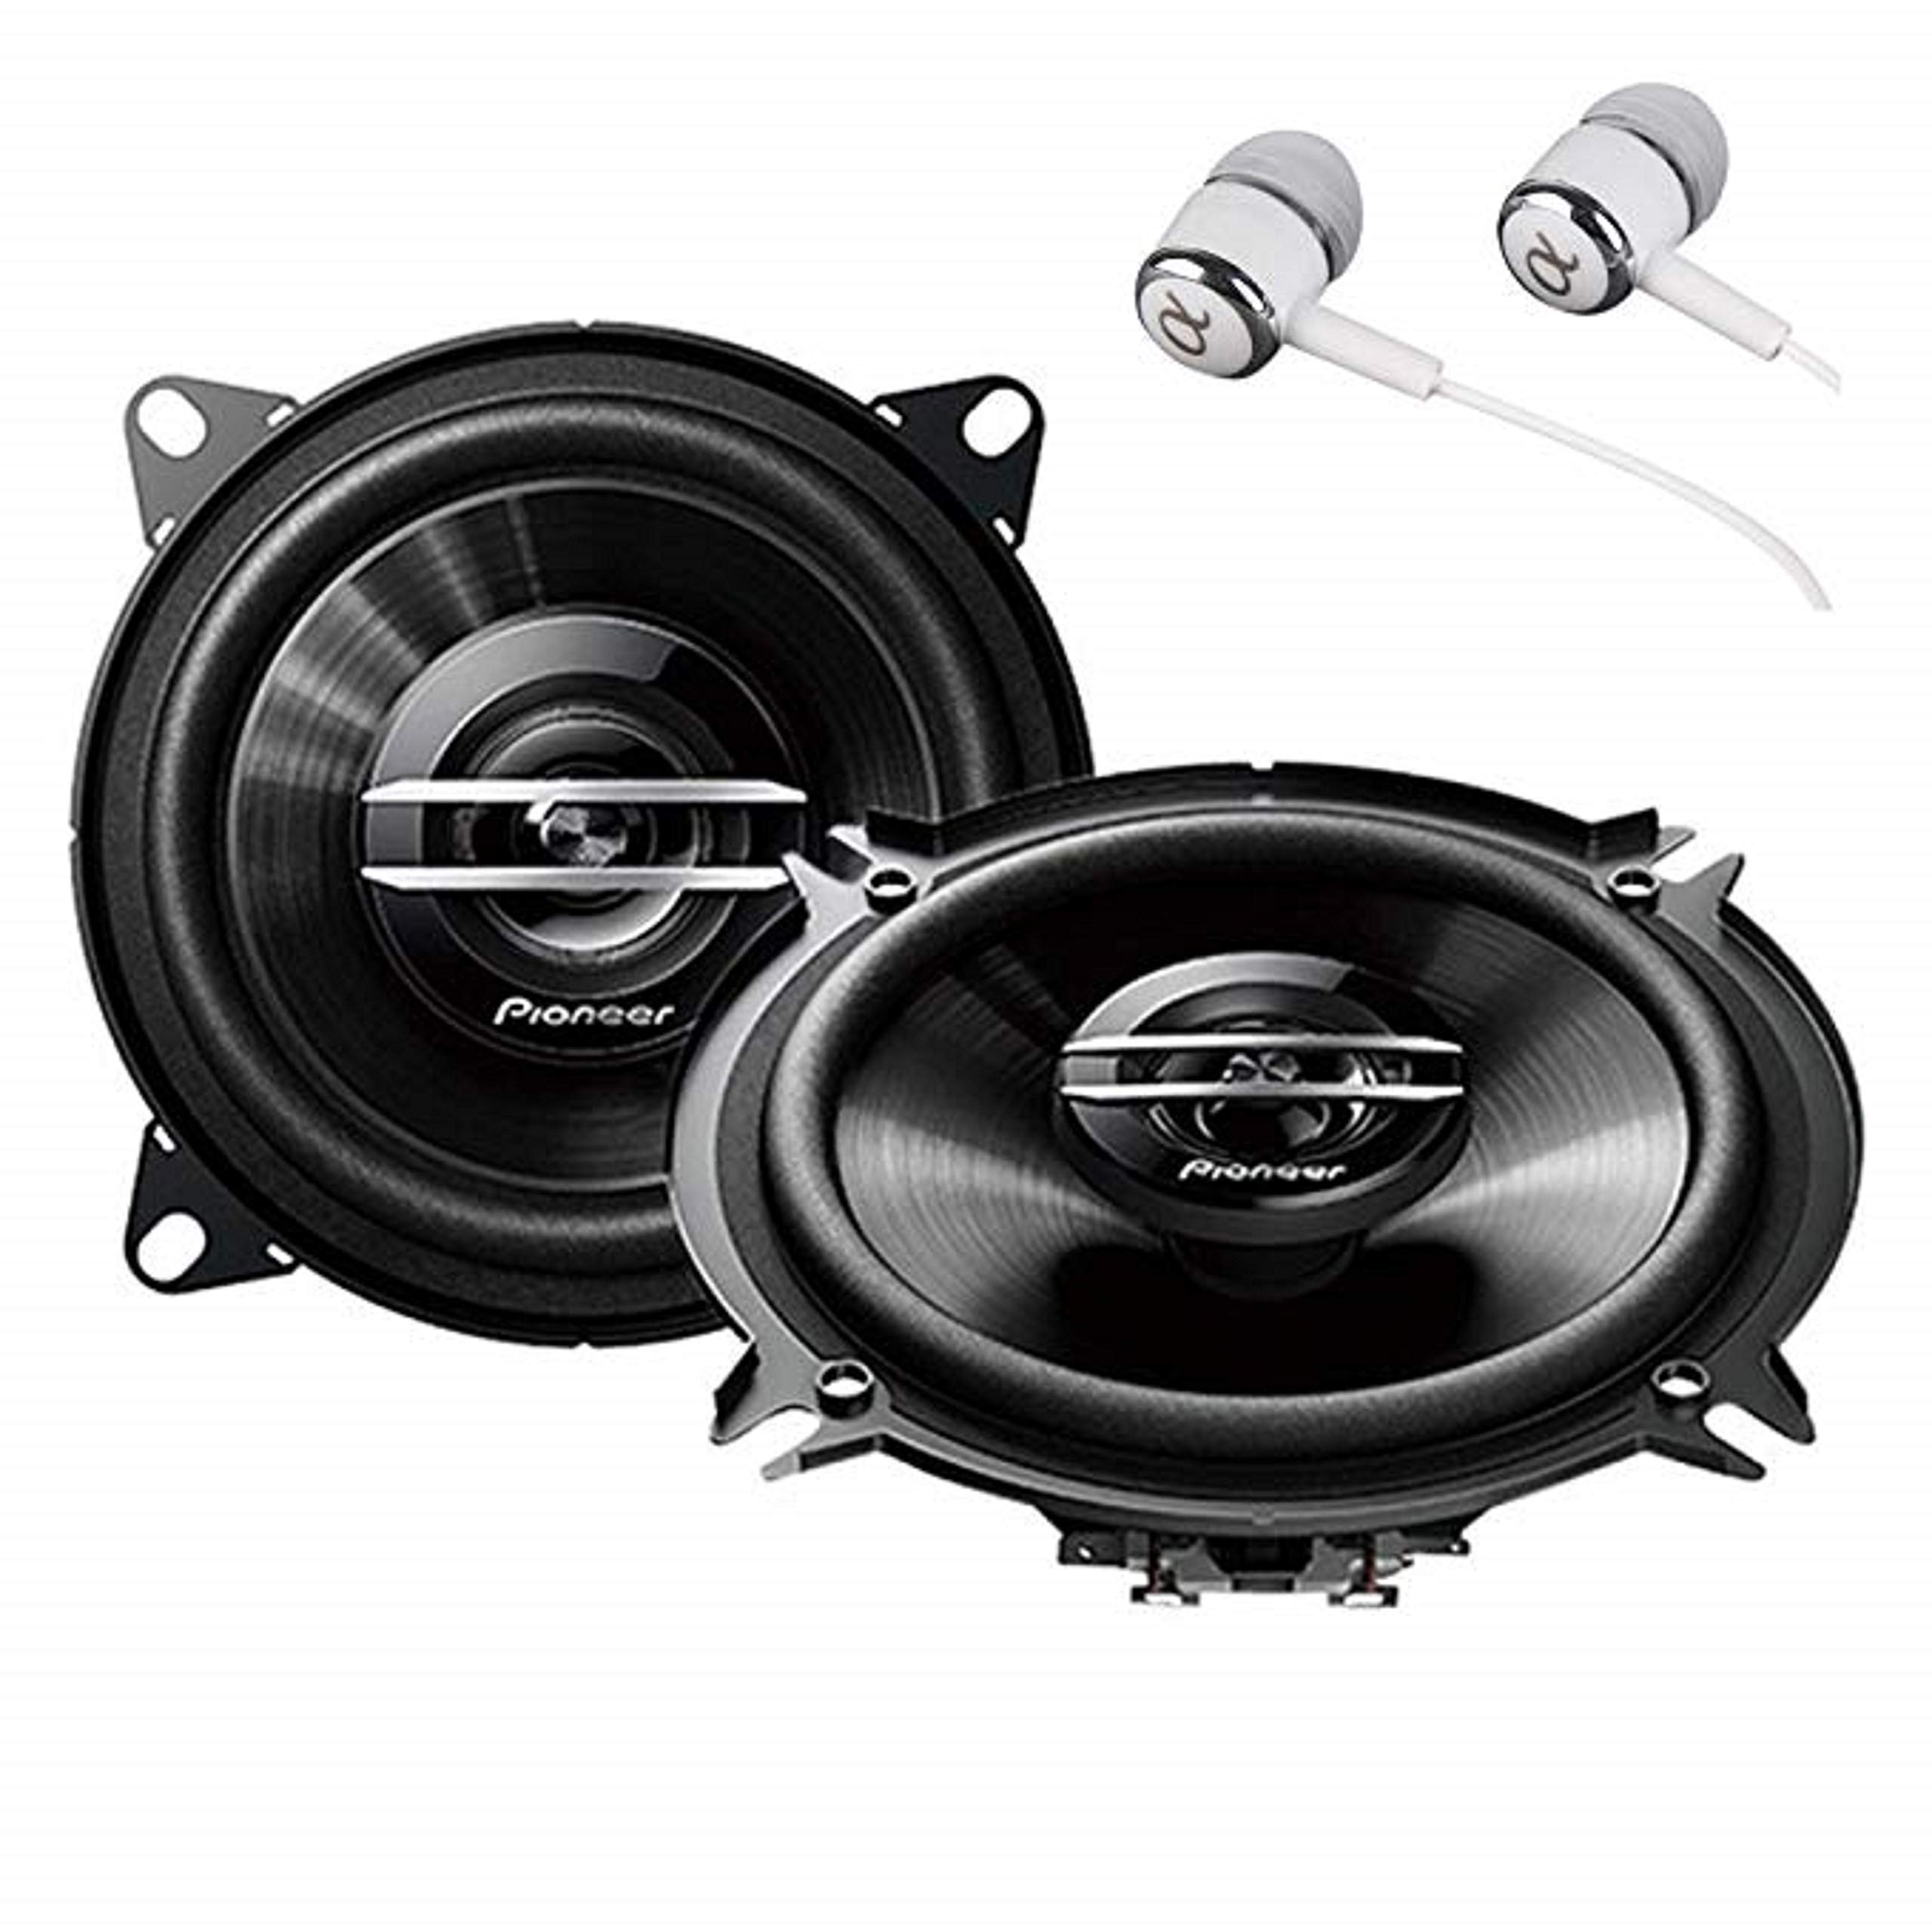 "Pioneer TS-G1020S 420 Watts Max Power 4"" 2-Way G-Series Coaxial Full Range Car Audio Stereo Speakers with ALPHASONIK Earbuds"